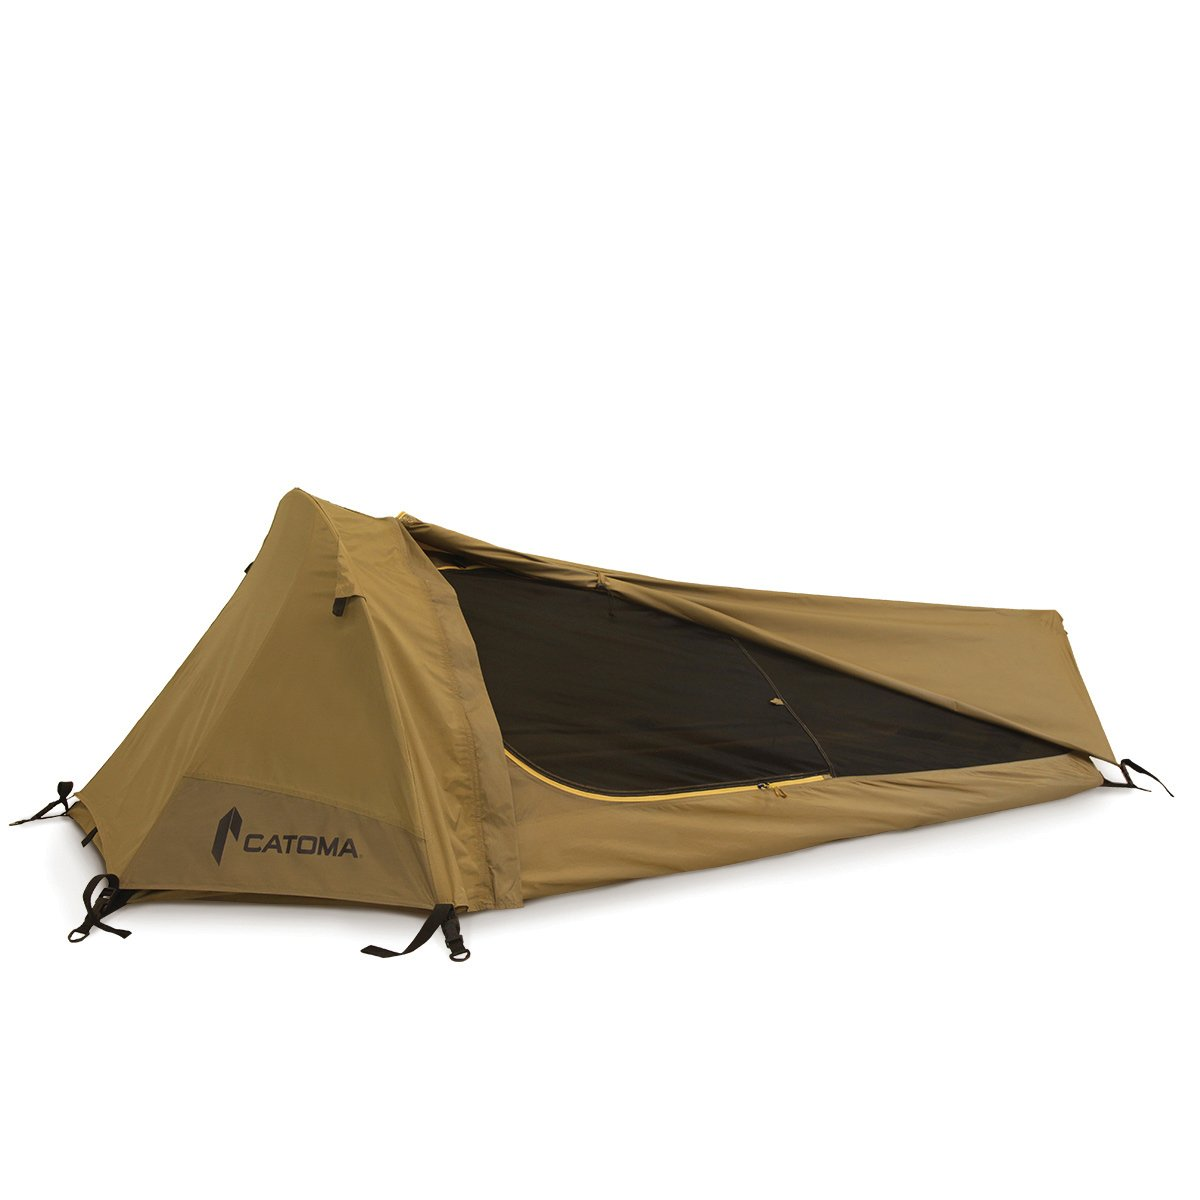 Raider Ultralight Solo Tent by Catoma   B00AHSRM1A